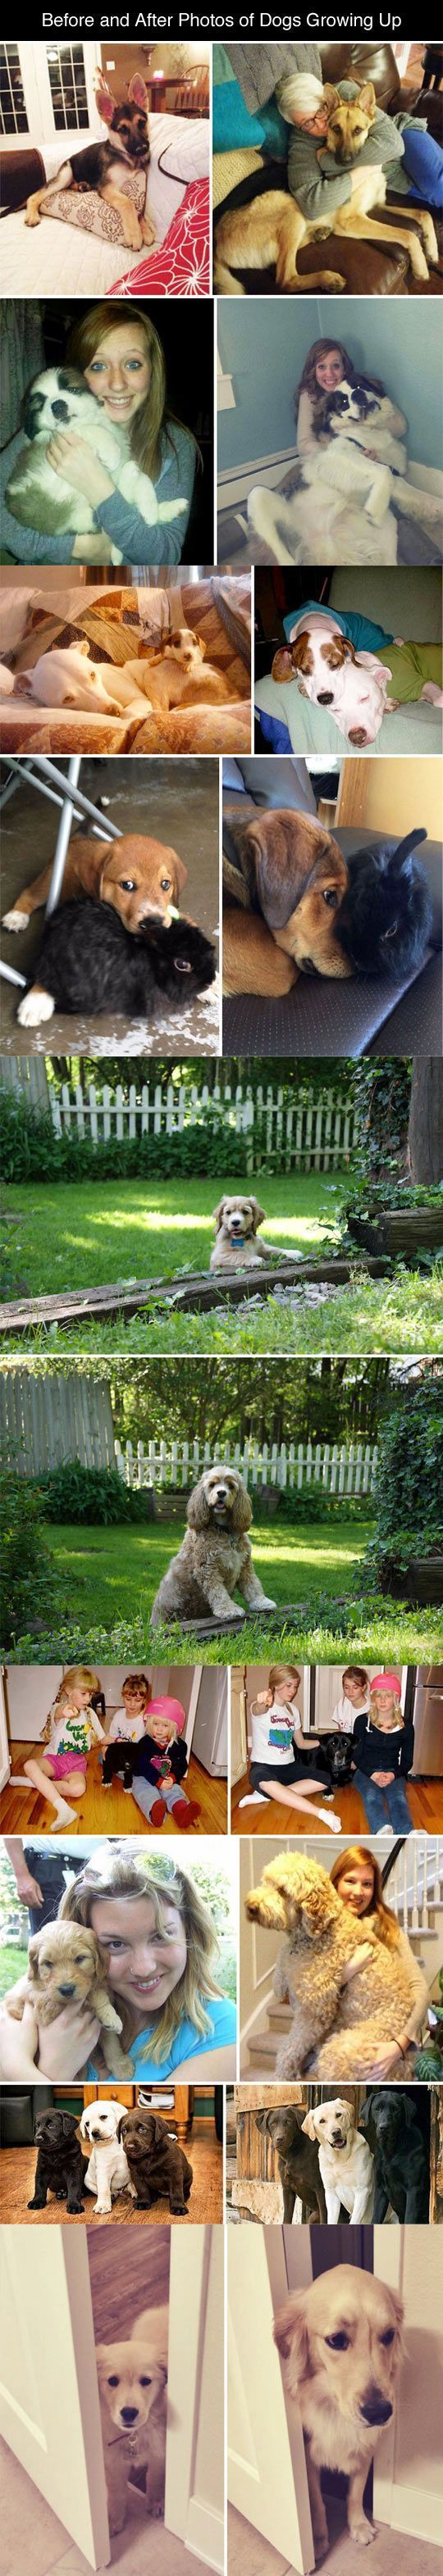 best puppies images on pinterest dog cat funny animals and